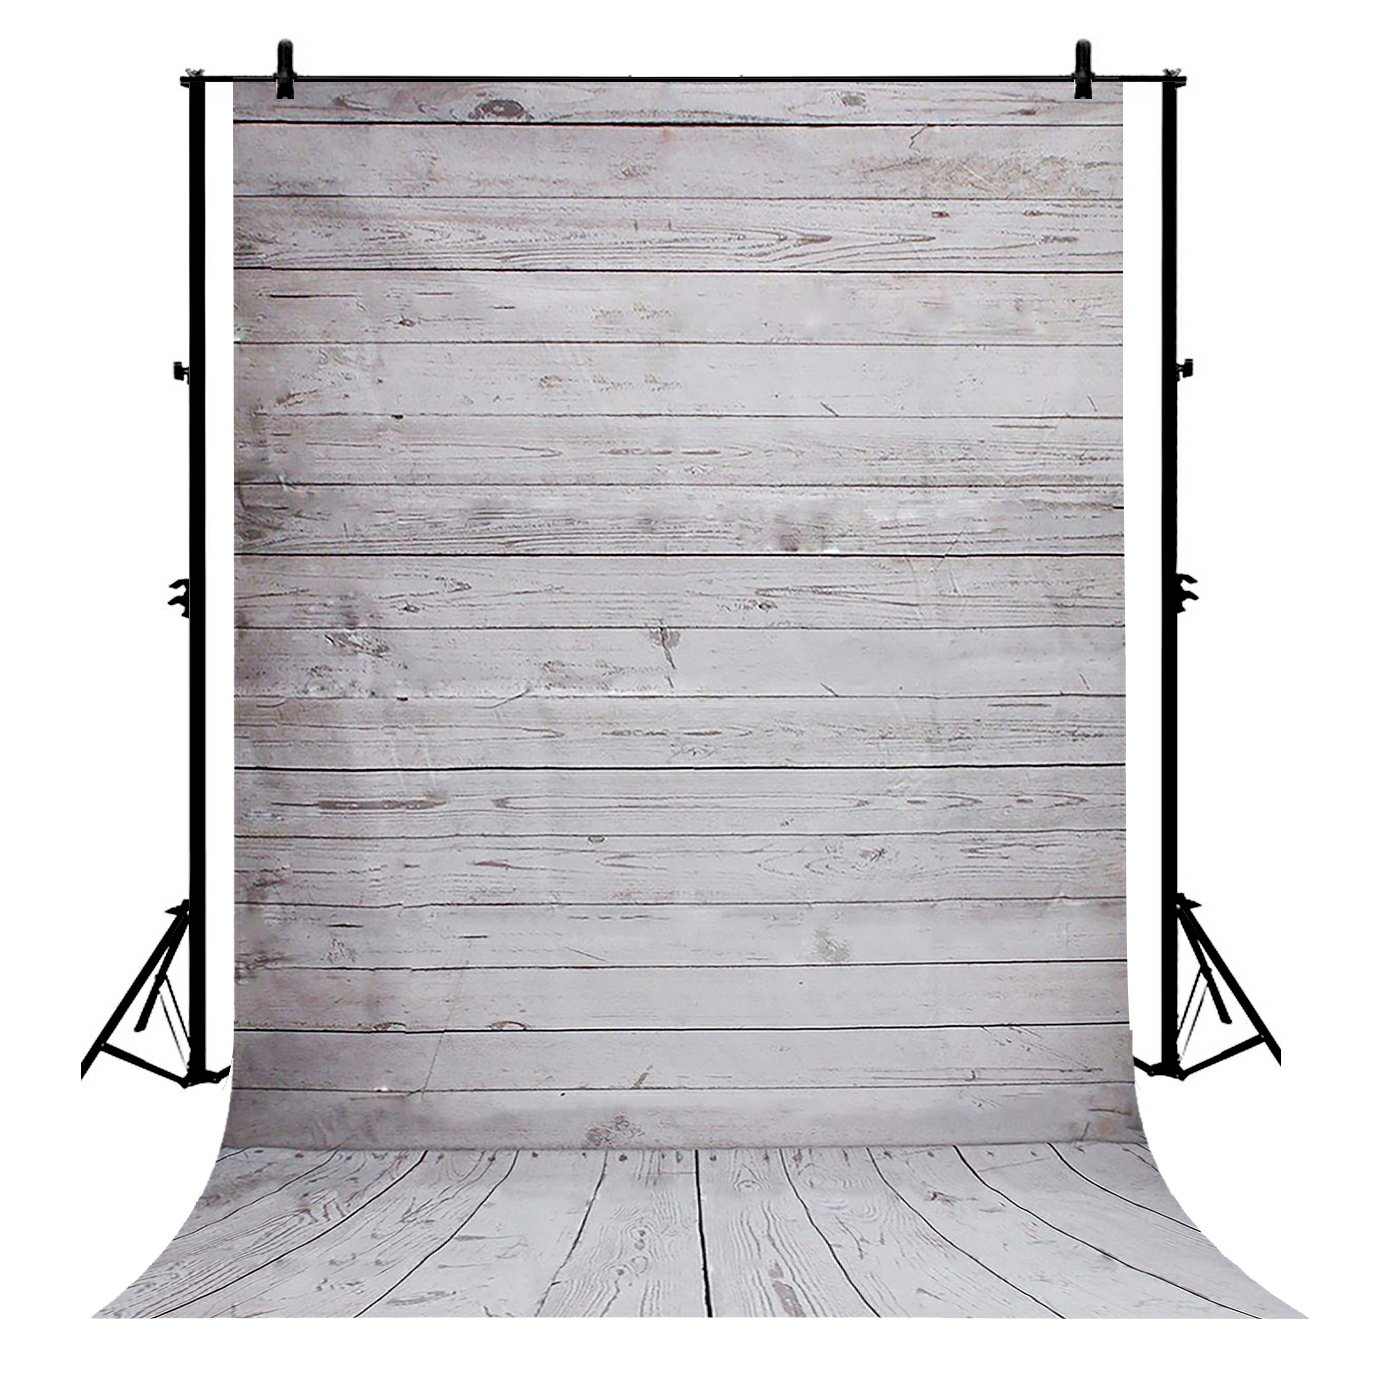 GCKG 7x5ft White Wood Floor Polyester Photography Backdrop Studio Prop Photo Background - image 4 de 4